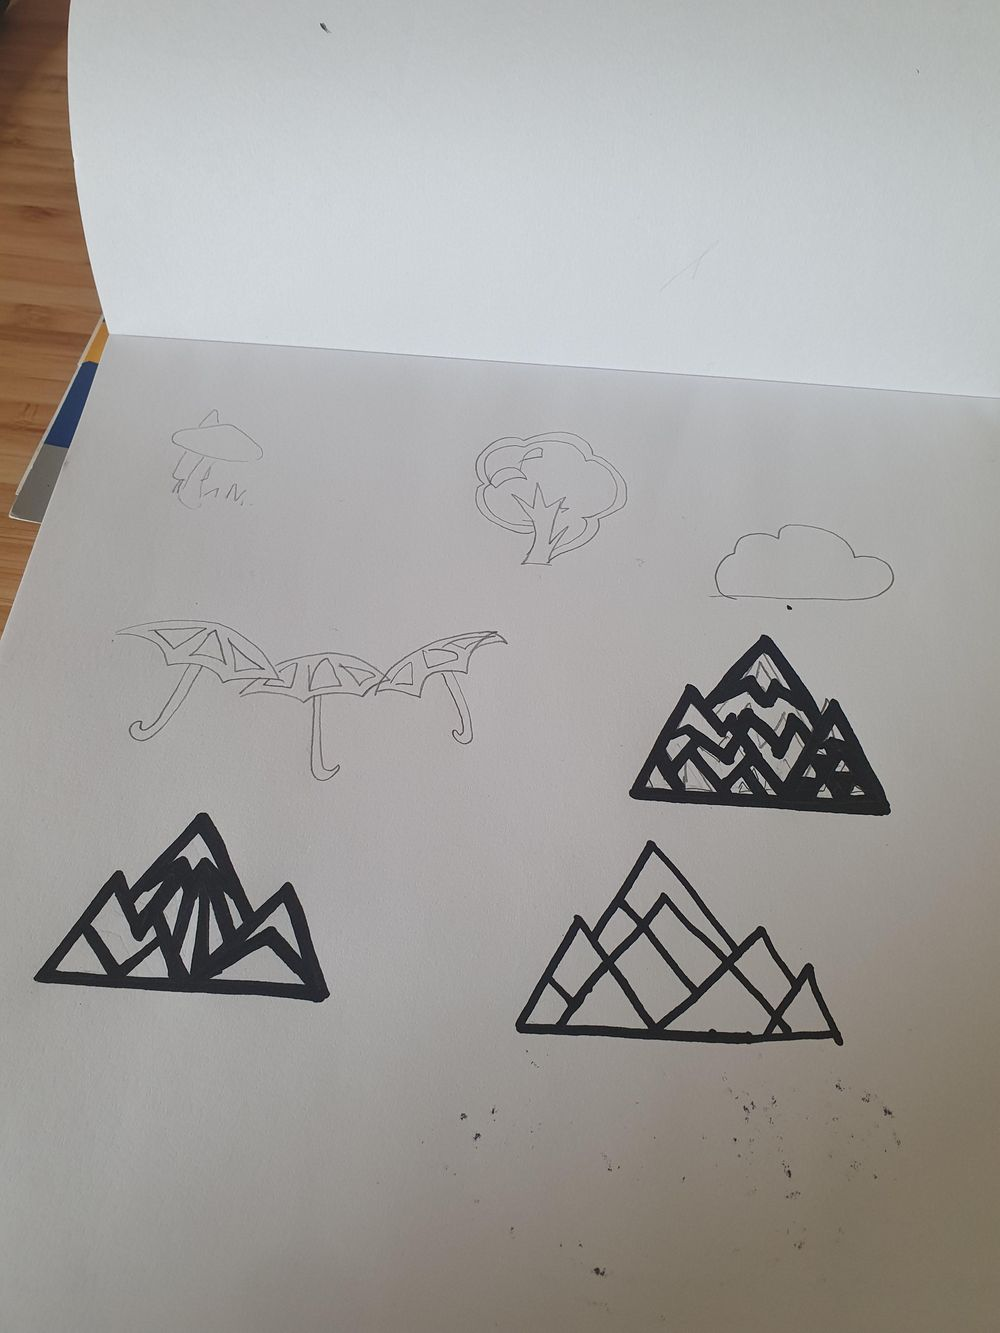 Mountain necklace design - image 1 - student project